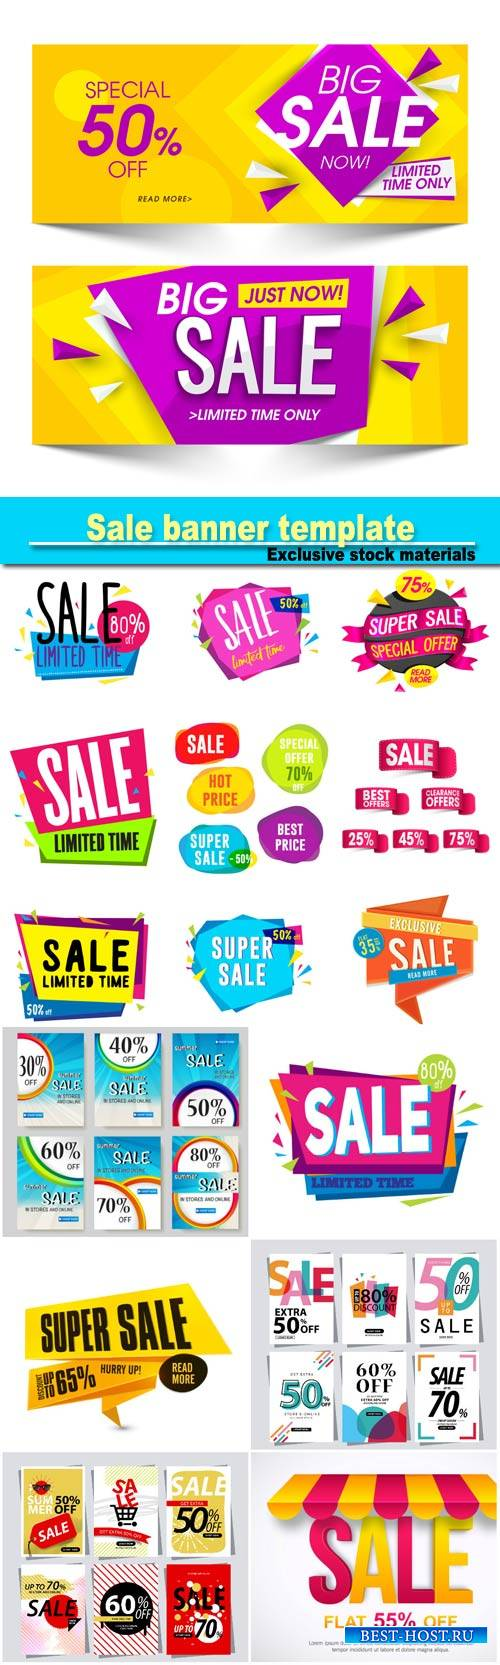 Sale banner template, sale sticker or label